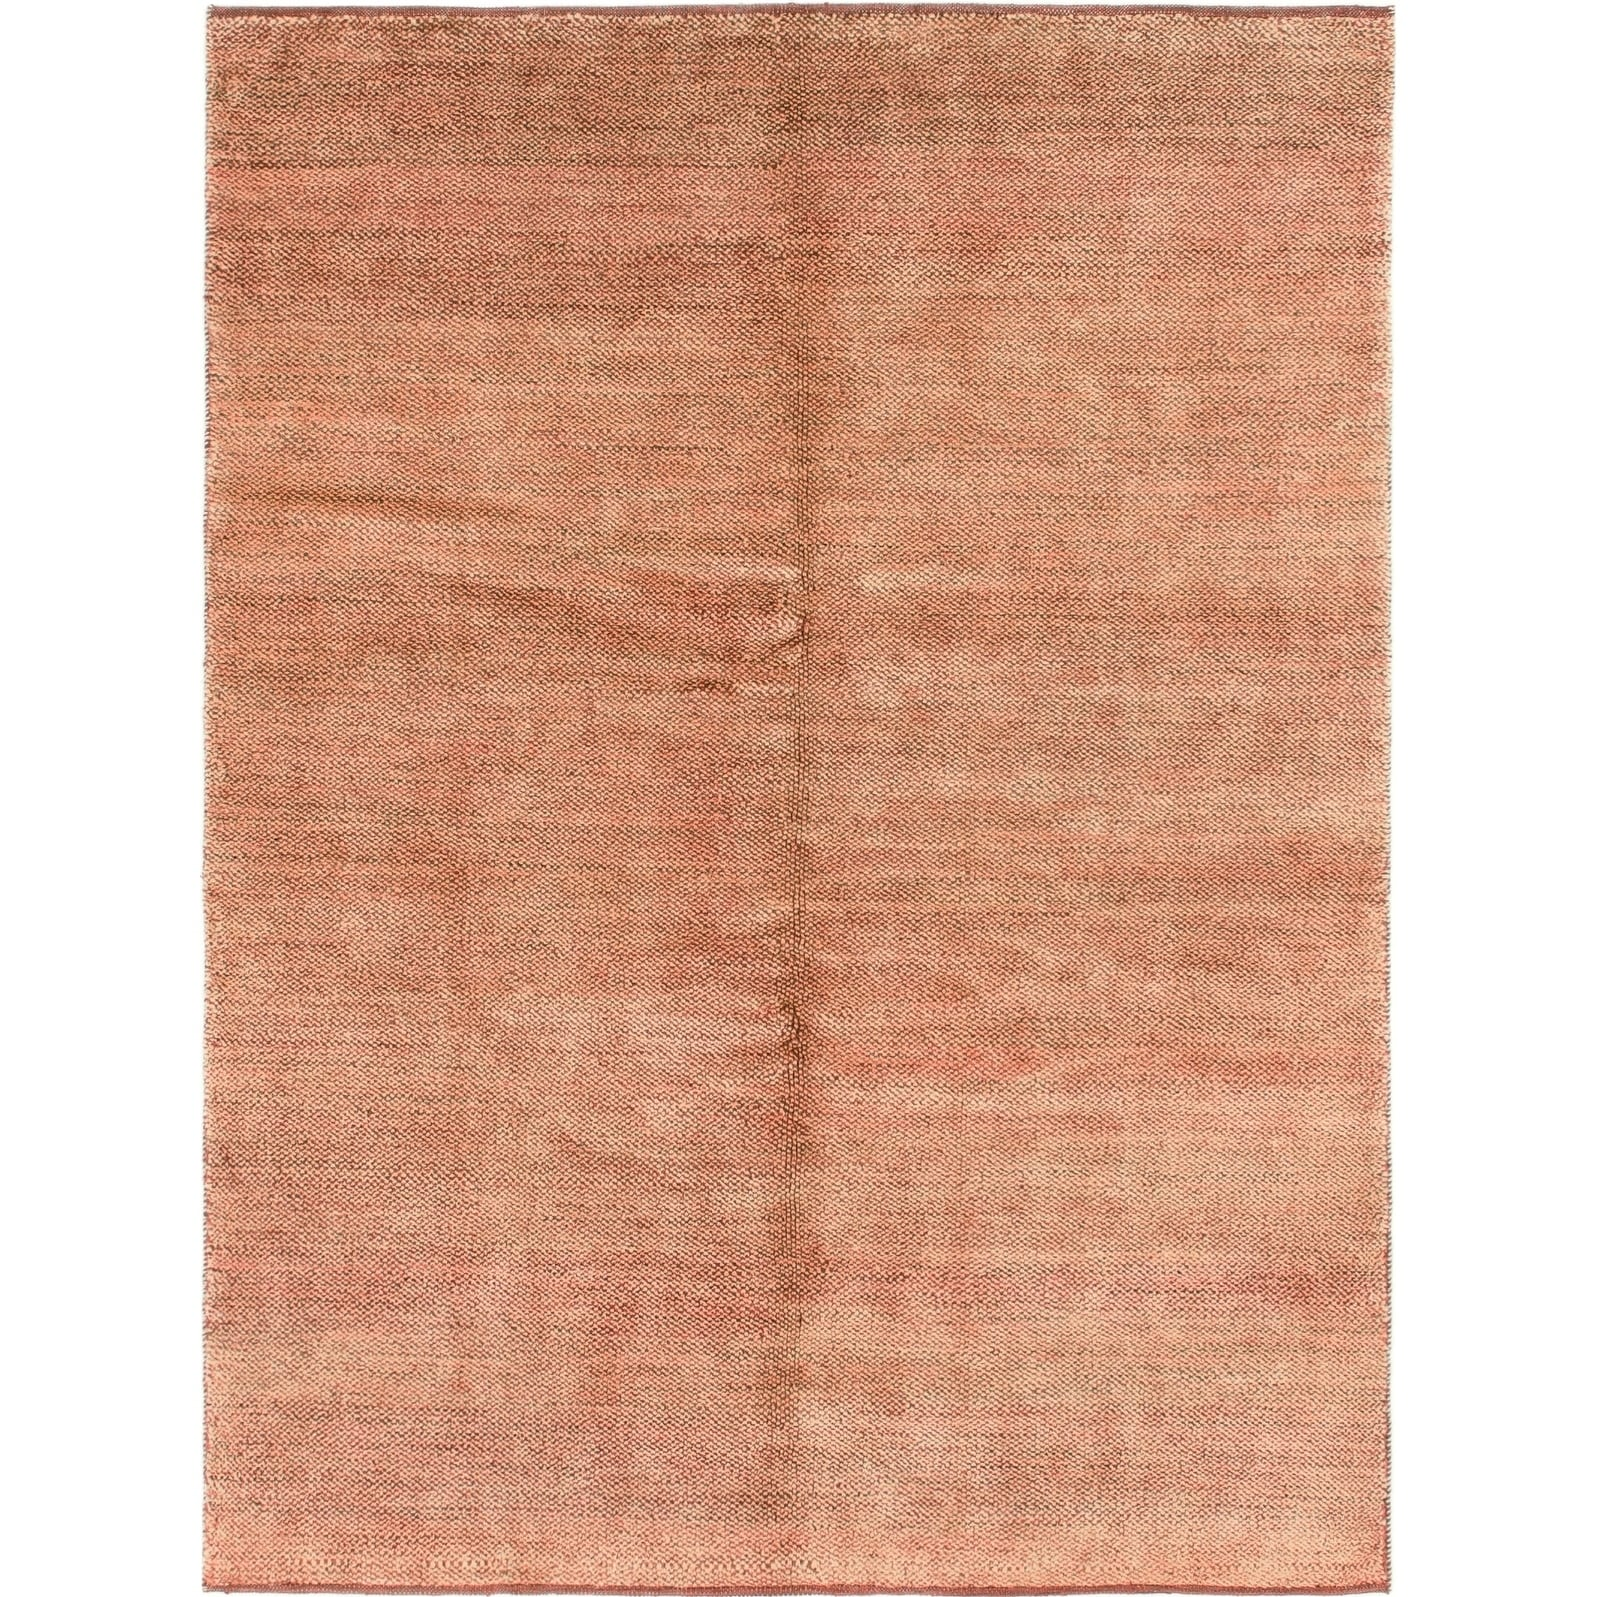 Hand Knotted Kashkuli Gabbeh Wool Area Rug - 4 9 x 6 5 (Red - 4 9 x 6 5)